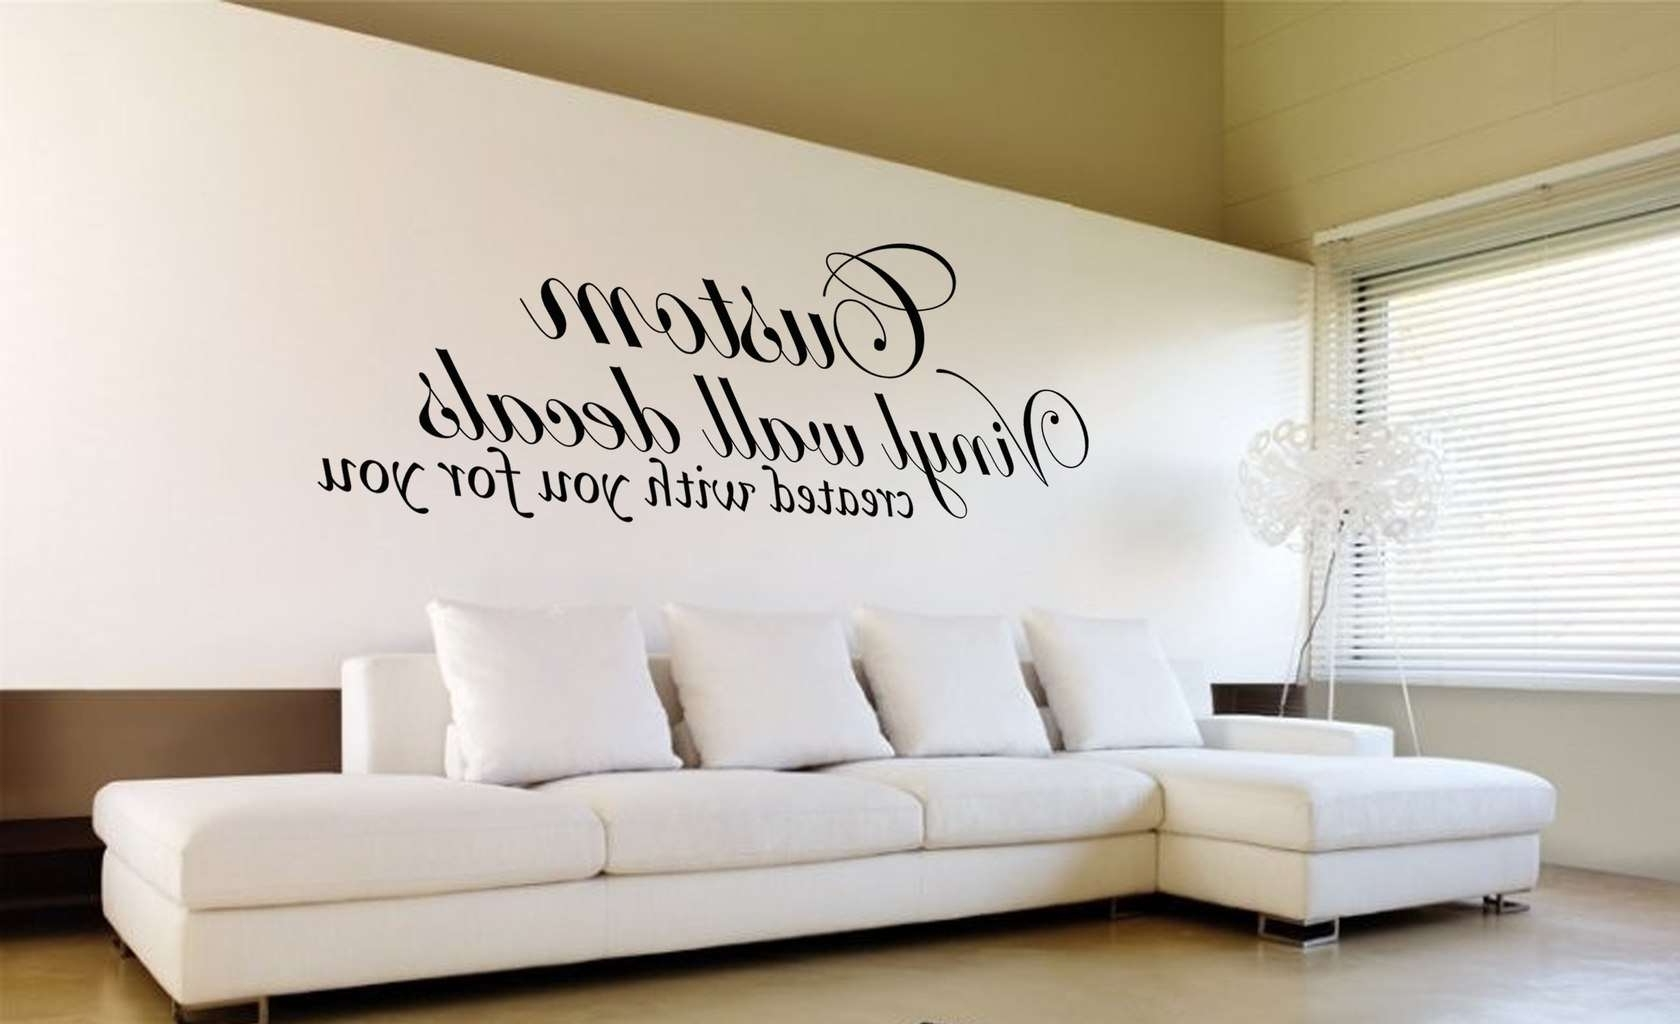 Custom Wall Art Decal Sticker (View 4 of 20)